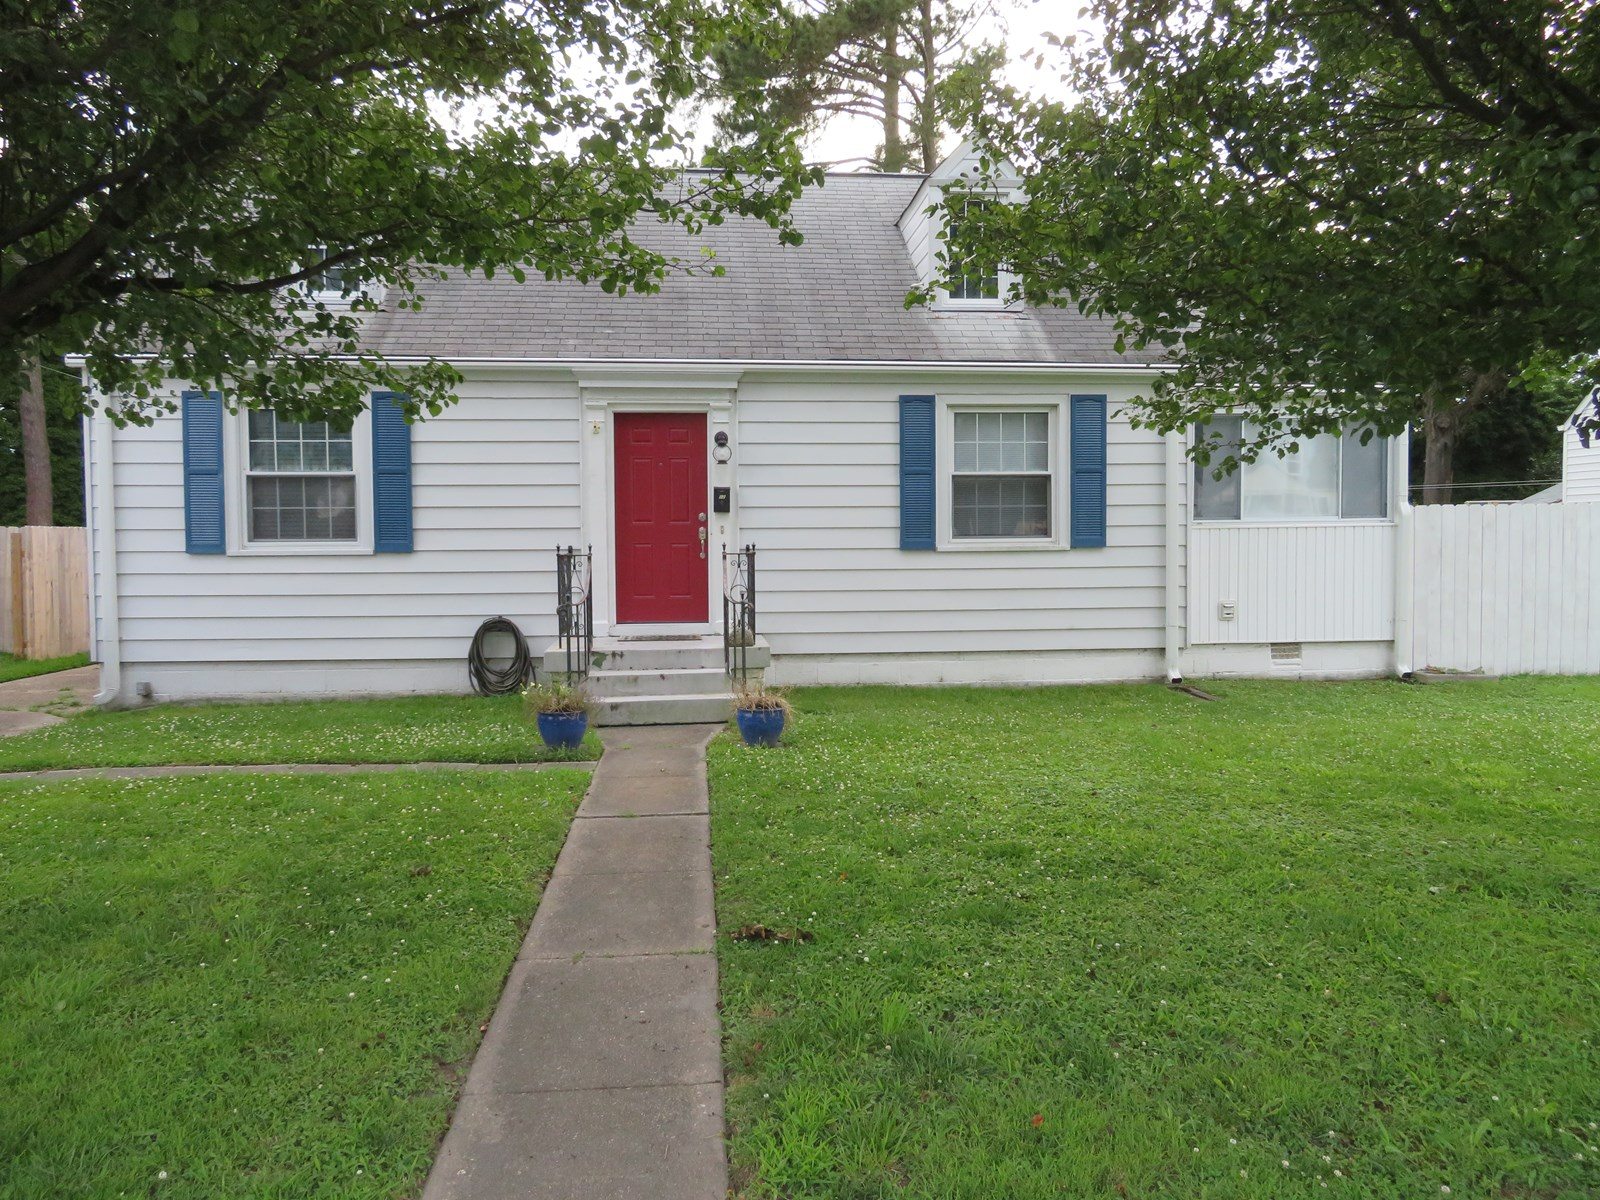 Adorable starter home or add it to a rental portfolio!!!